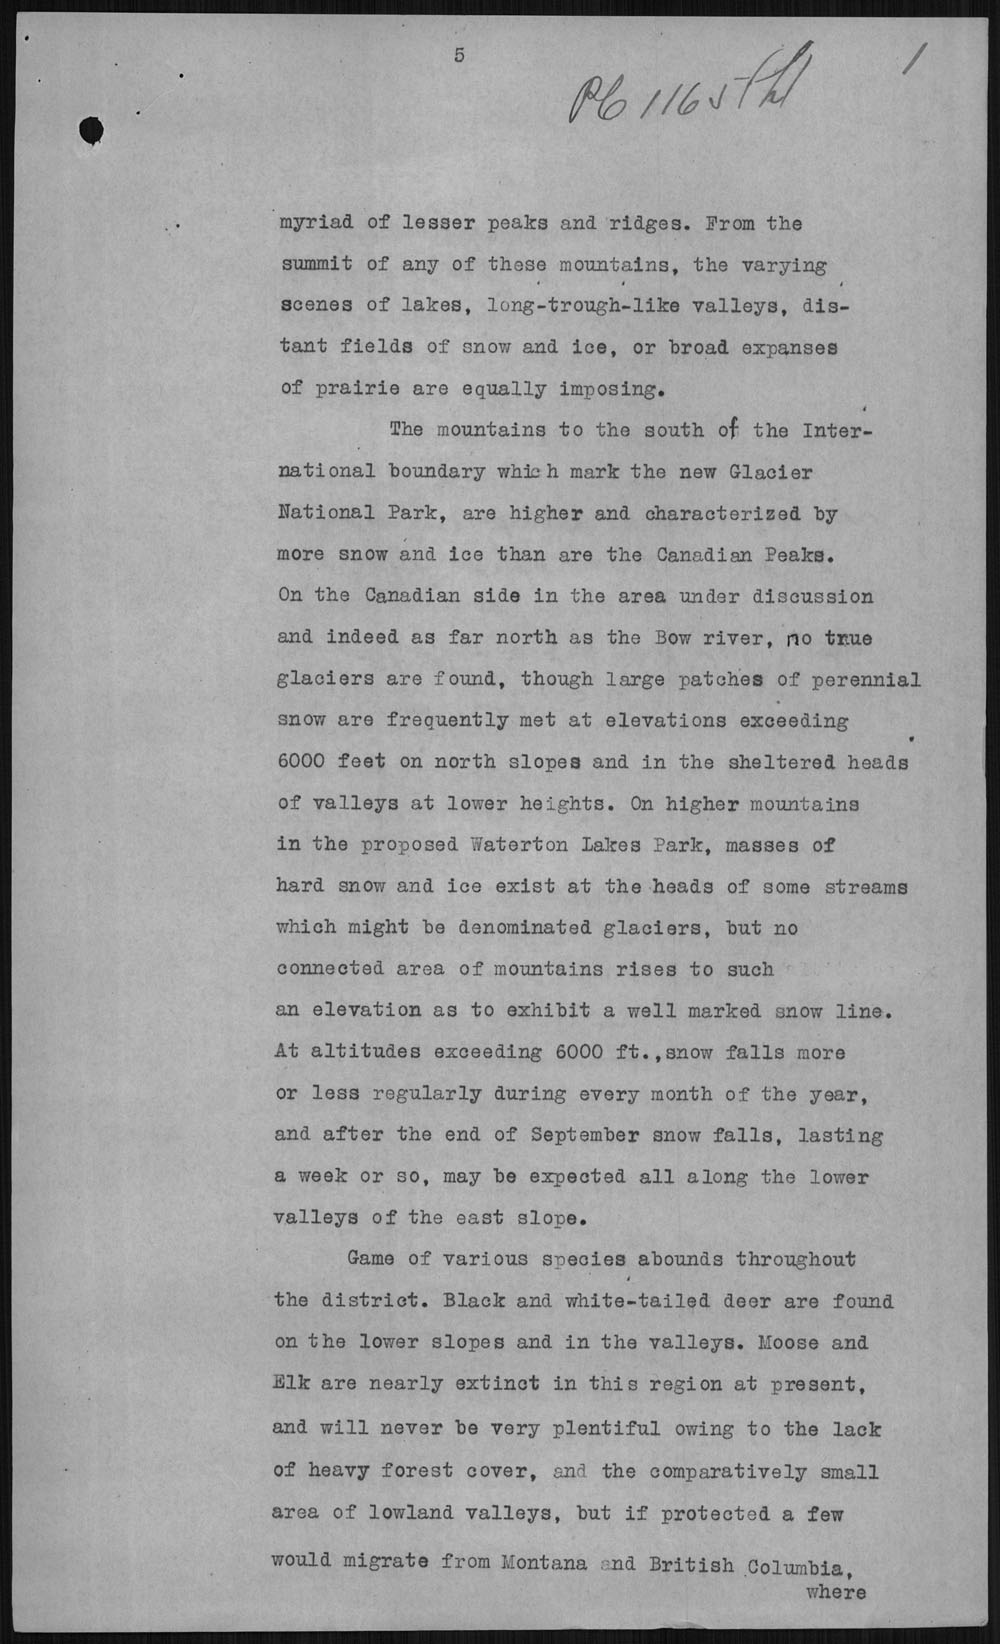 Digitized page of Orders in Council for Image No.: e010877262-v8